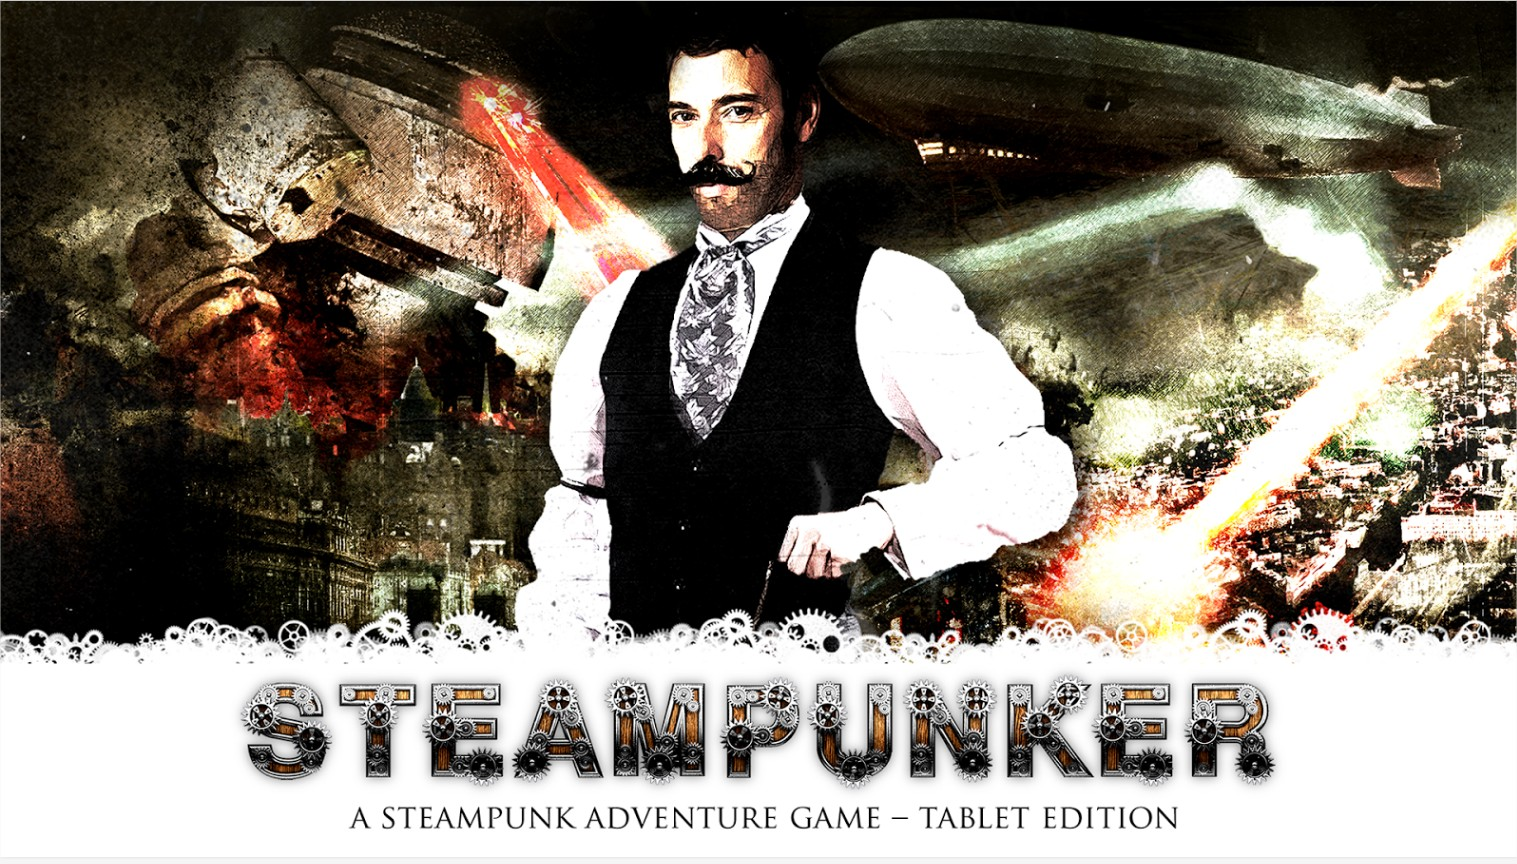 Steampunker-android-france-01